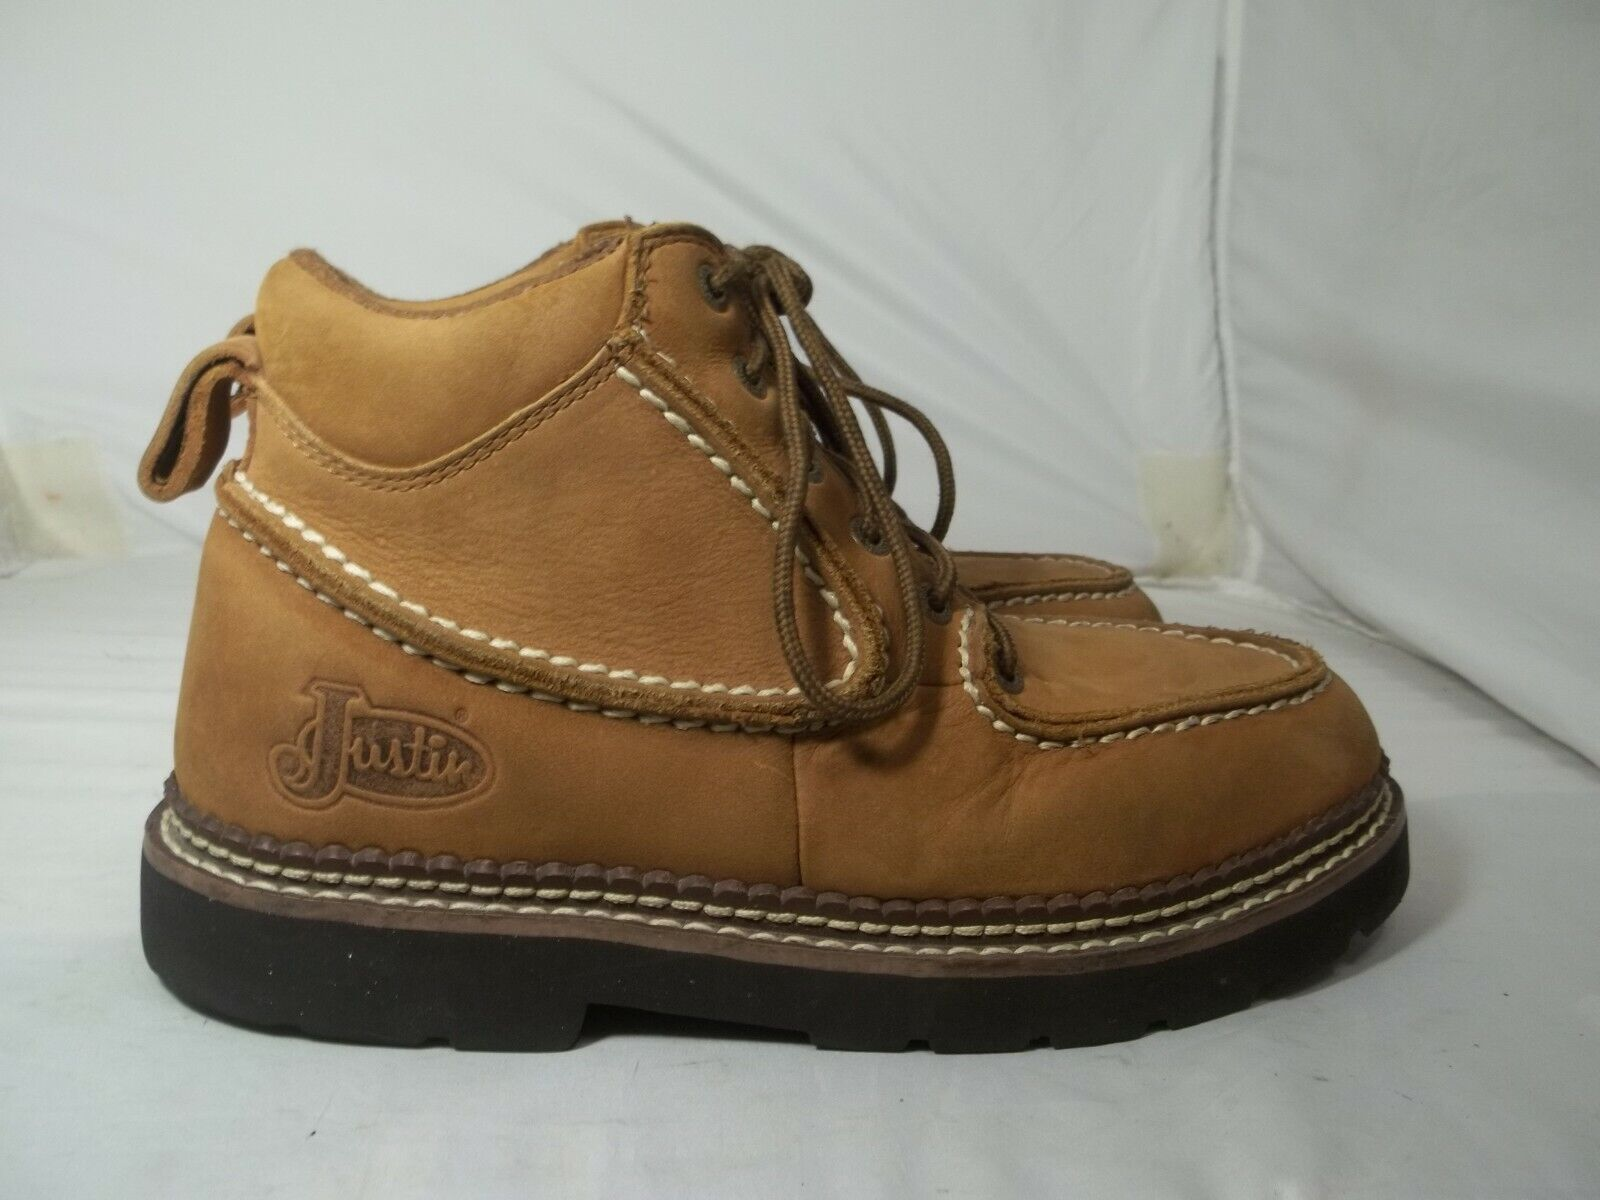 WOMEN'S JUSTIN SIZE 7 1 2 M LACE BROWN SUEDE LEATHER COMFORT BOOTS